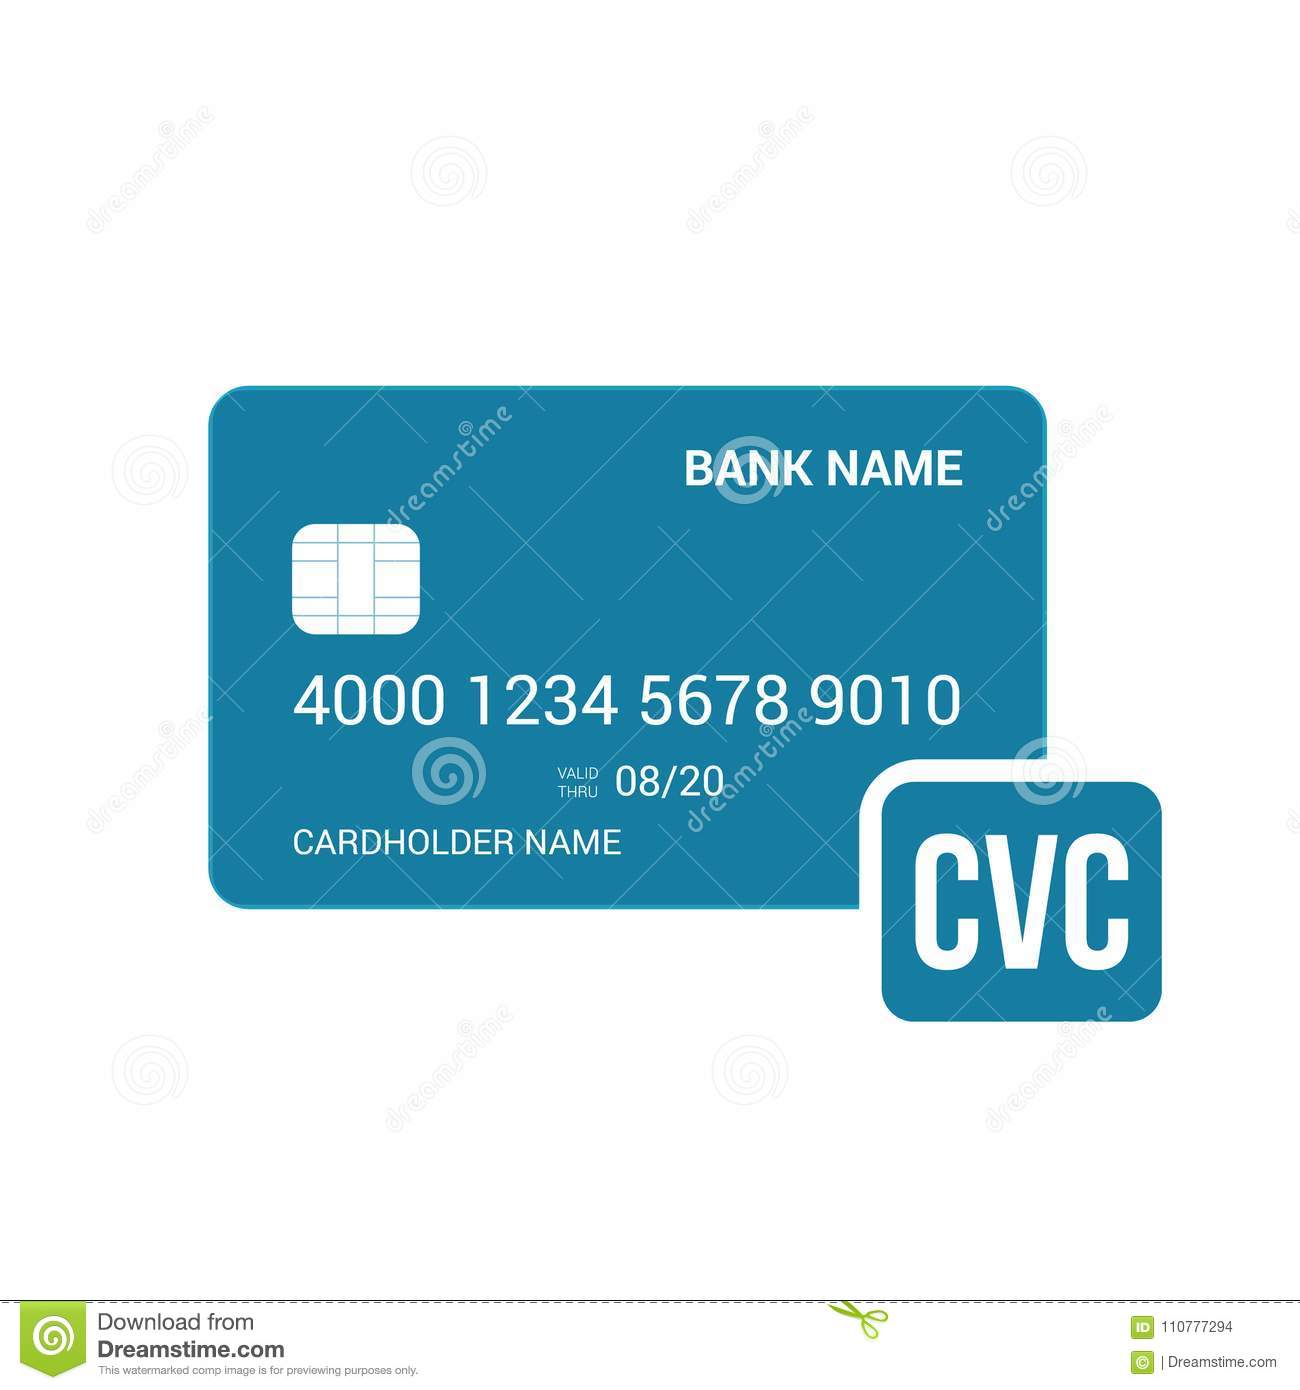 Bank Card Cvc Security Icon Stock Vector - Illustration of business